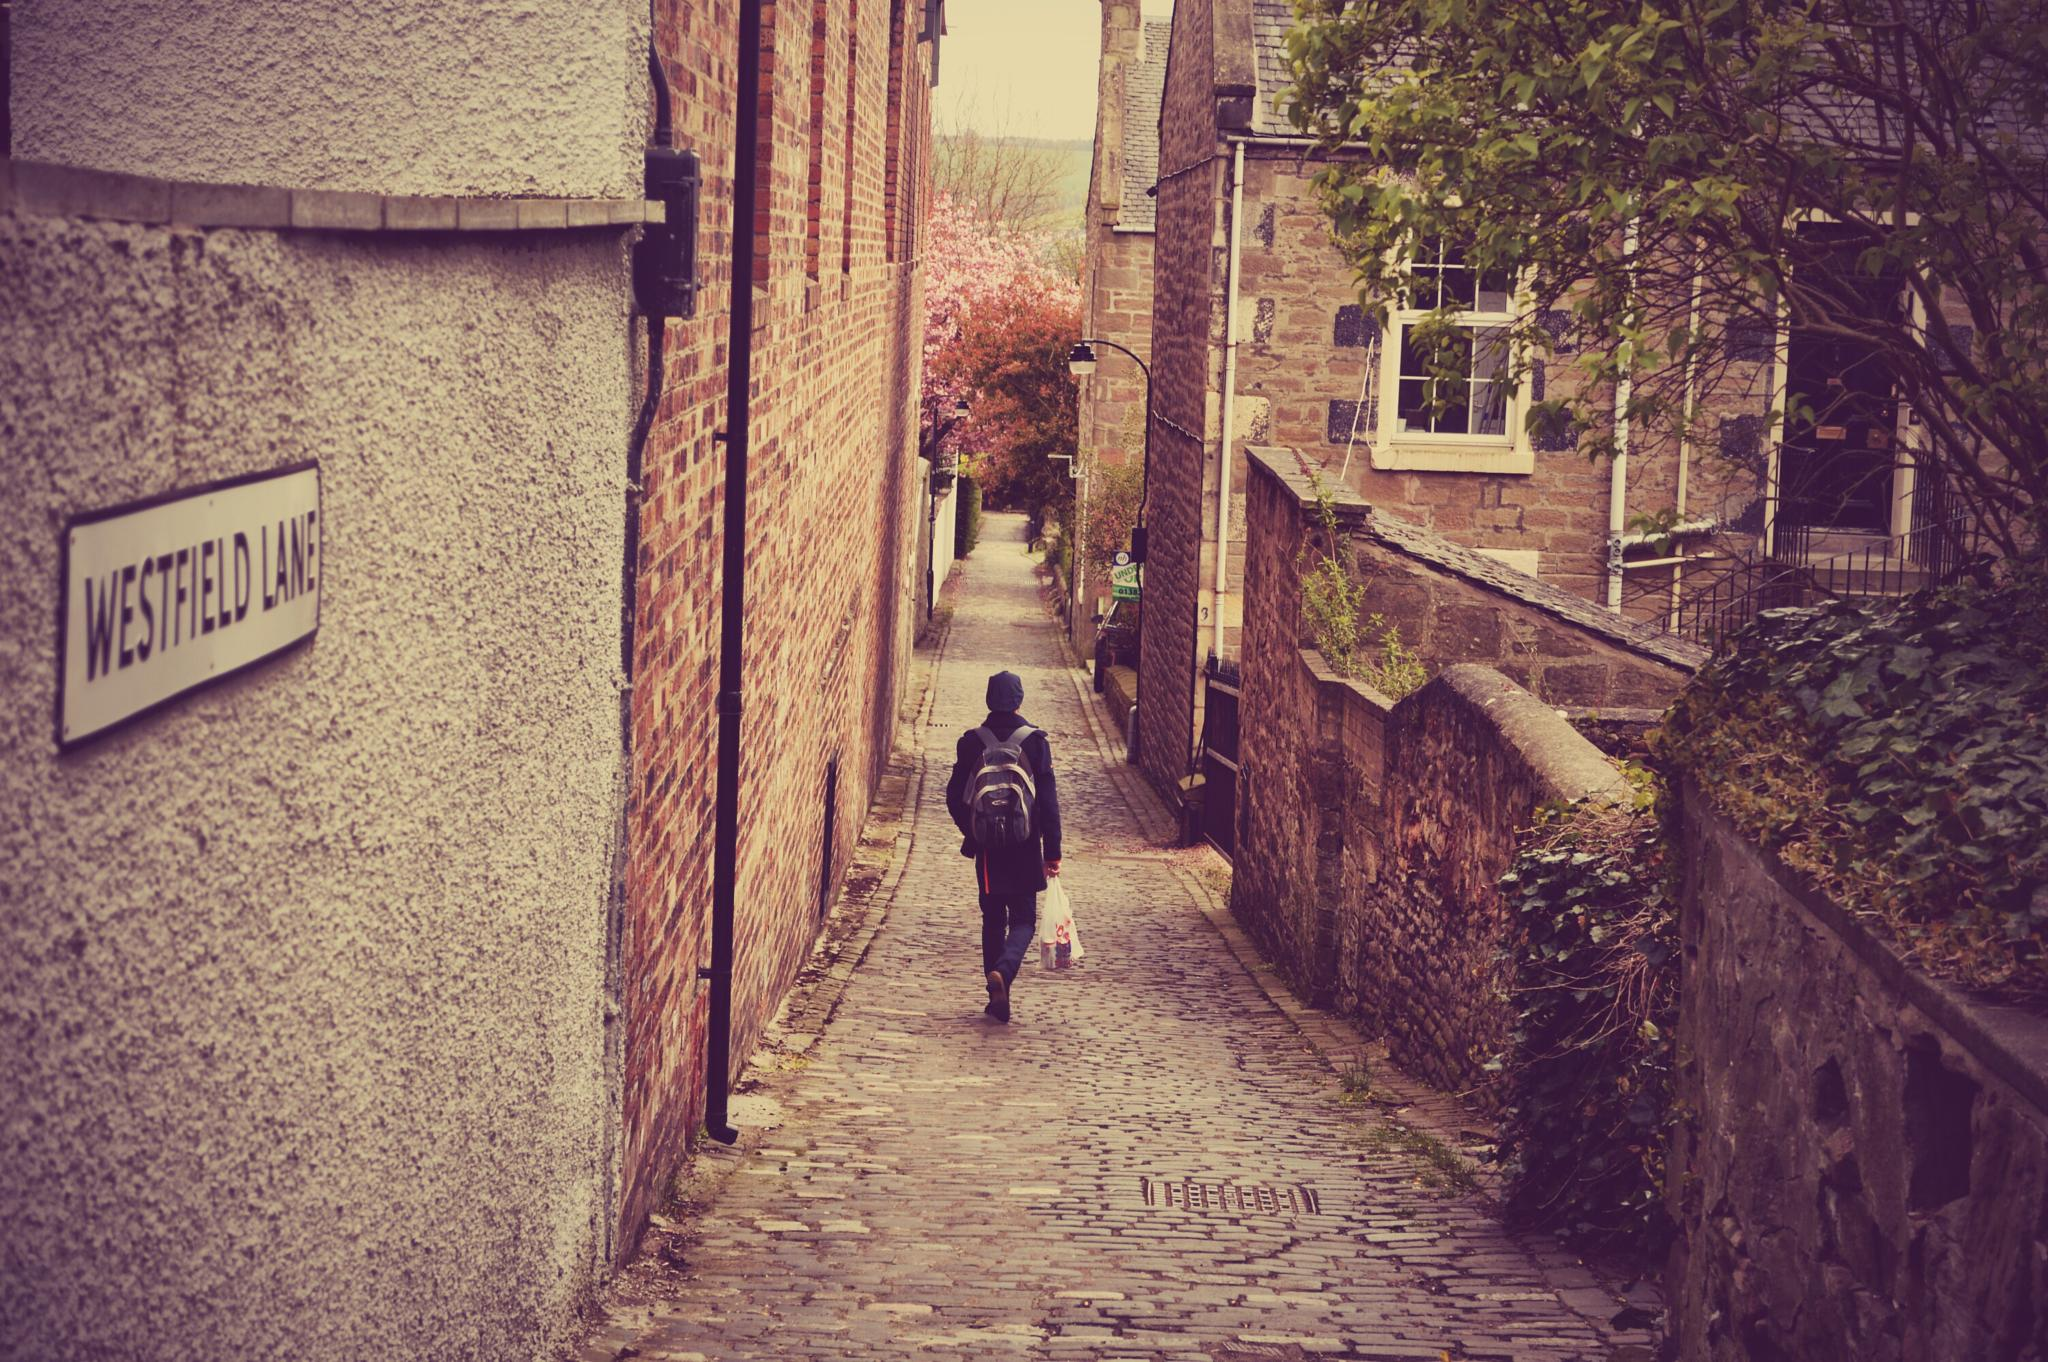 Westfield Lane by The PhotoGrabber